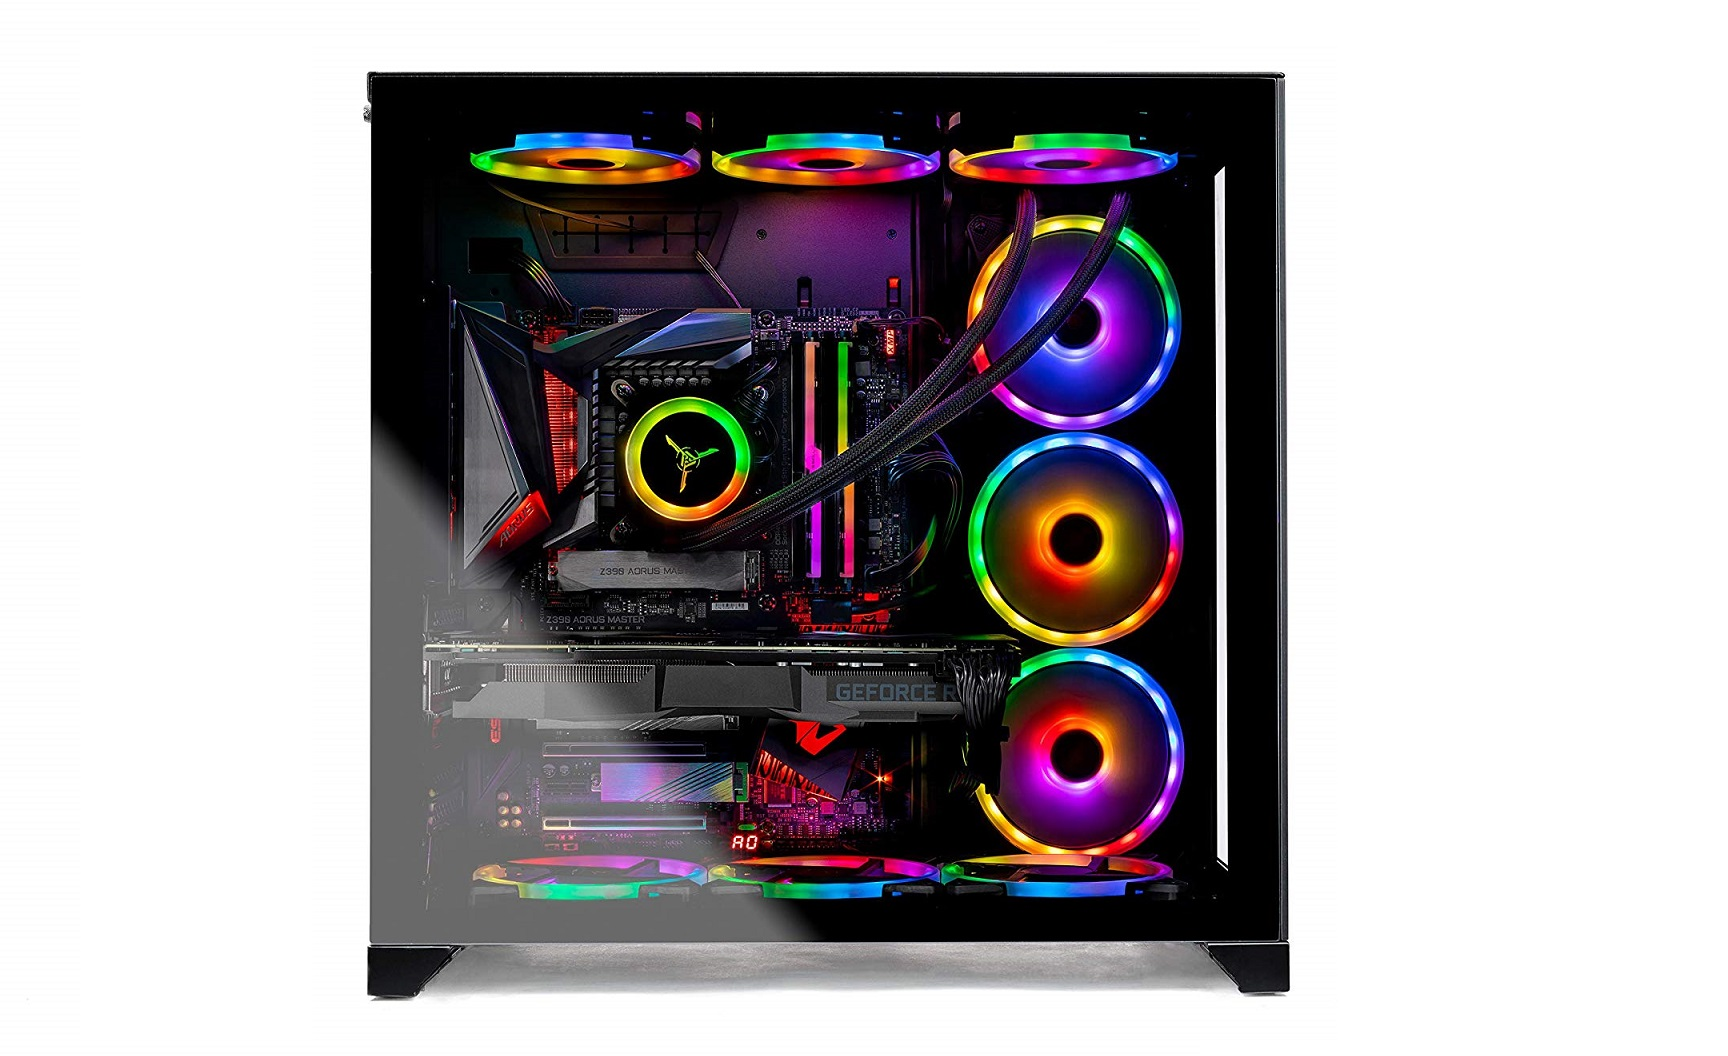 The Best Gaming Desktop 2020